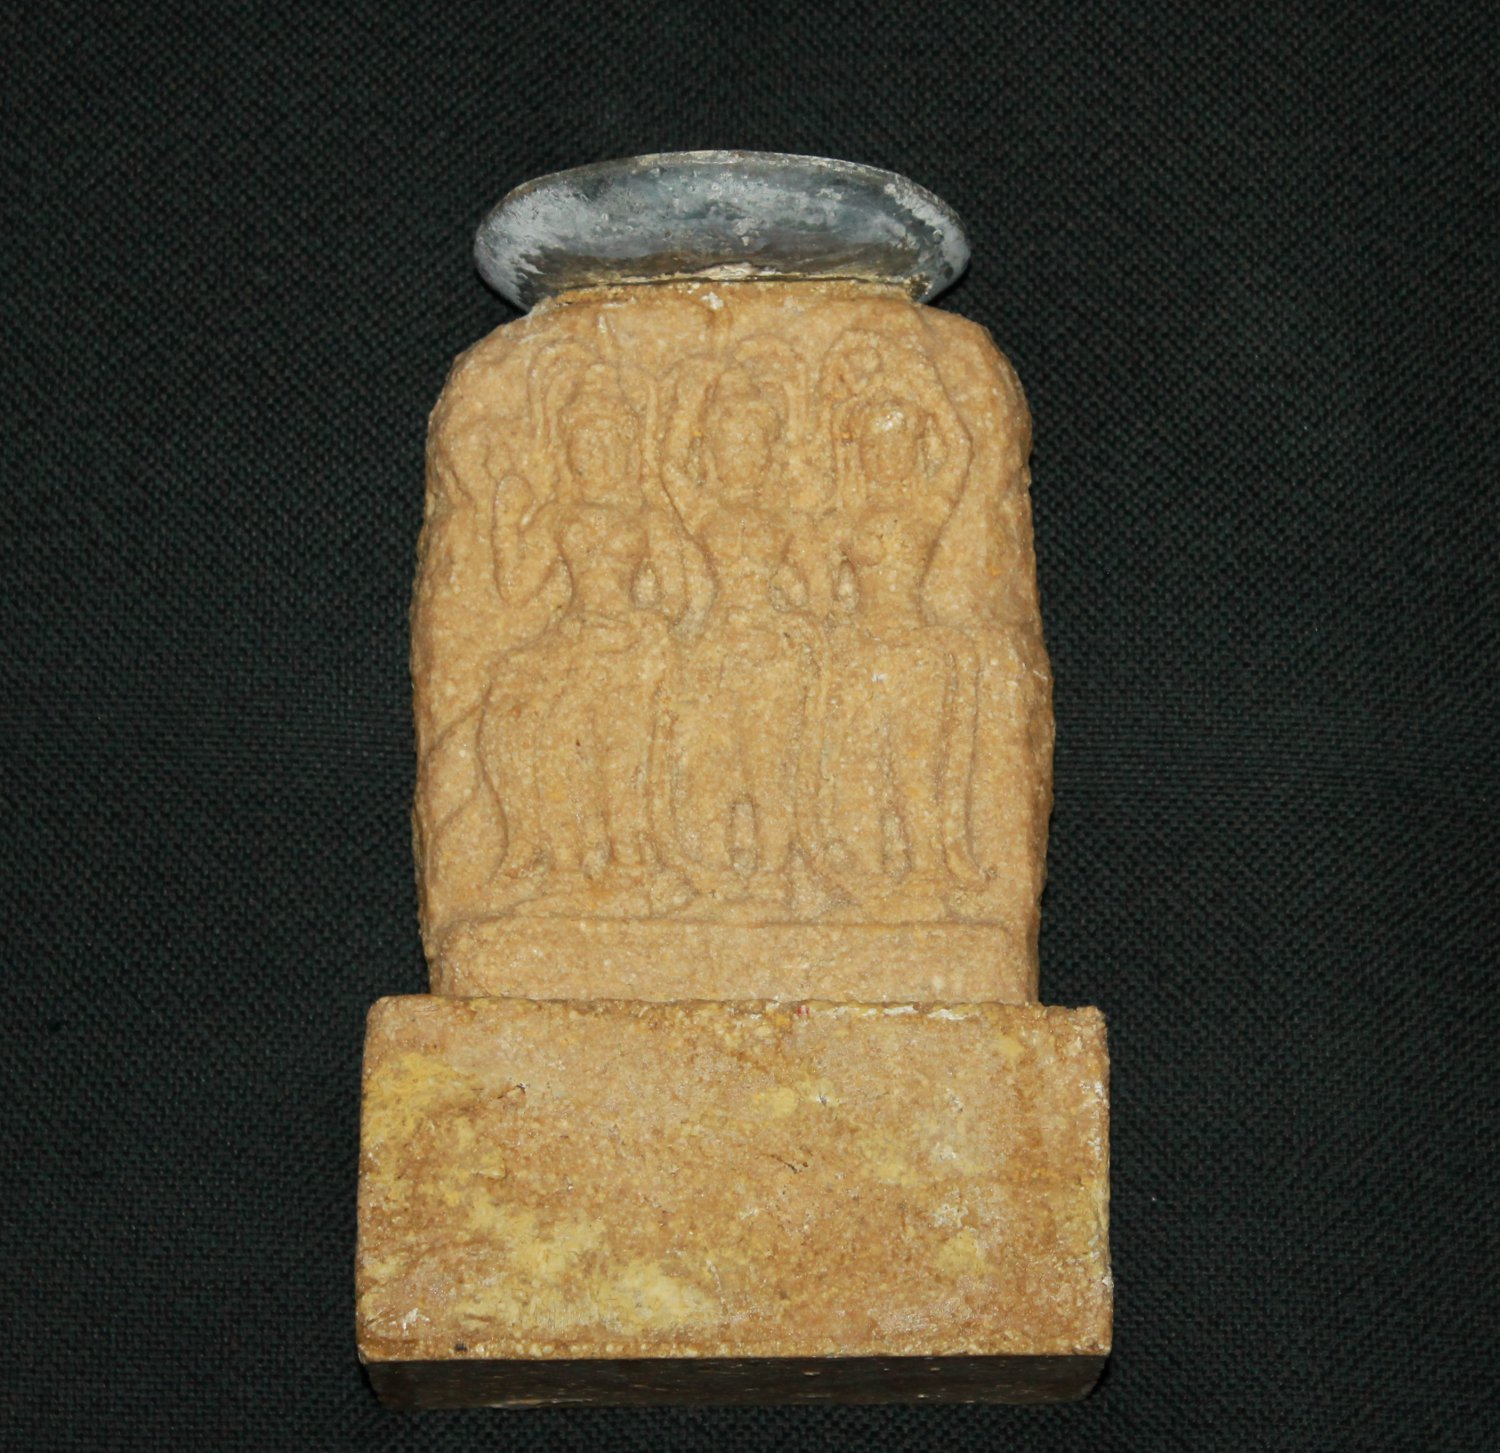 Philipino Hand Carved Stone Candle Holder - hand made in the Philippines